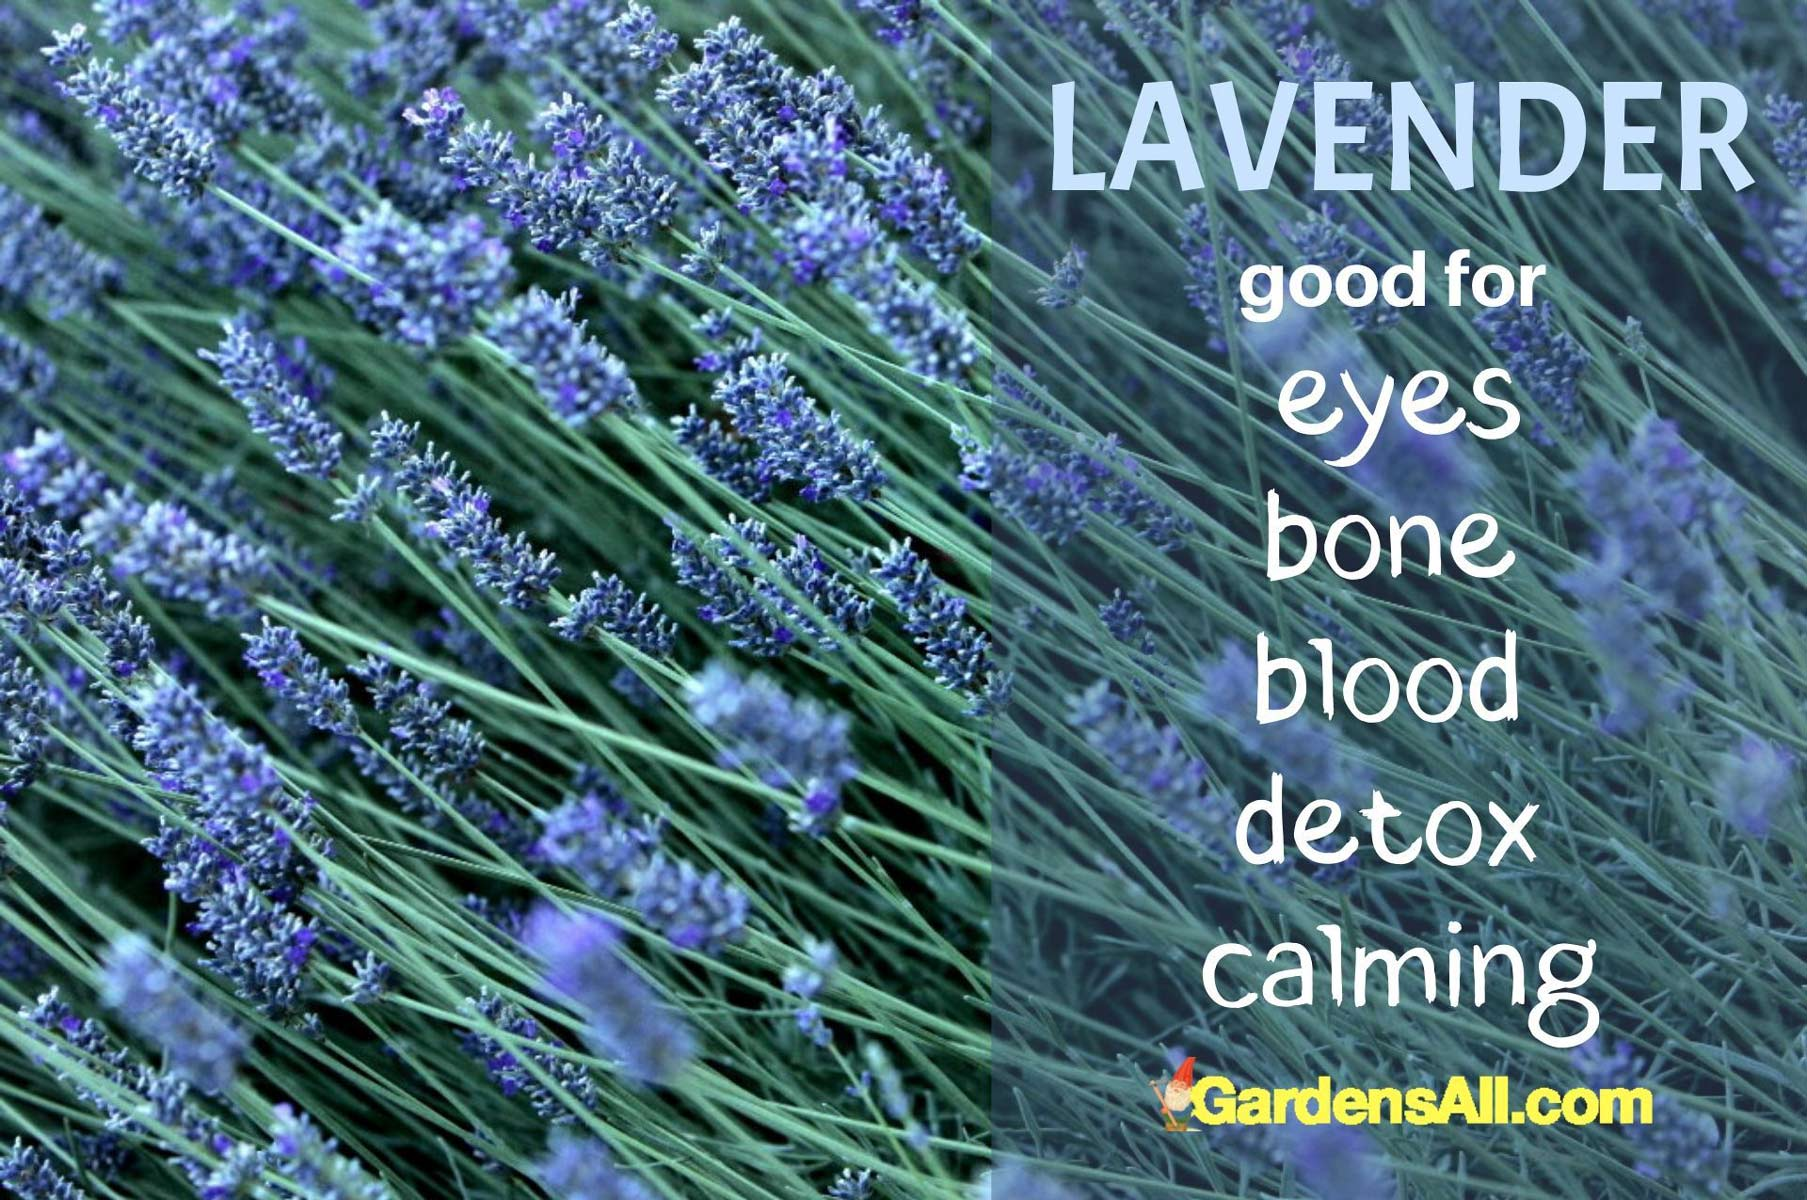 Lavender - Blooms accentuate sweet and savory dishes with a sweet mingling of floral, fresh pine and rosemary with citrus notes. English lavender varieties (L. angustifolia) have the best culinary flavor. #EdibleFlowers #AreFlowersEdible #Flowers #HealthBenefits #Lavender #Edible #Garden